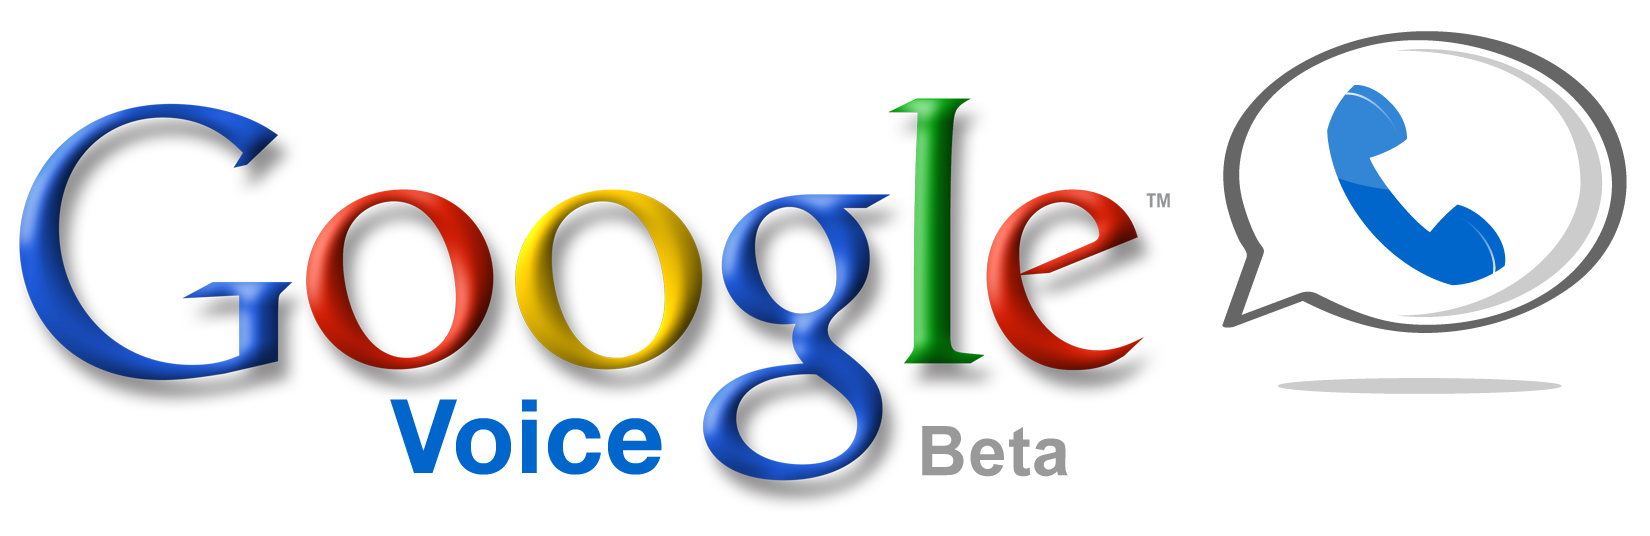 googlevoice_logo_shaded_phone_beta